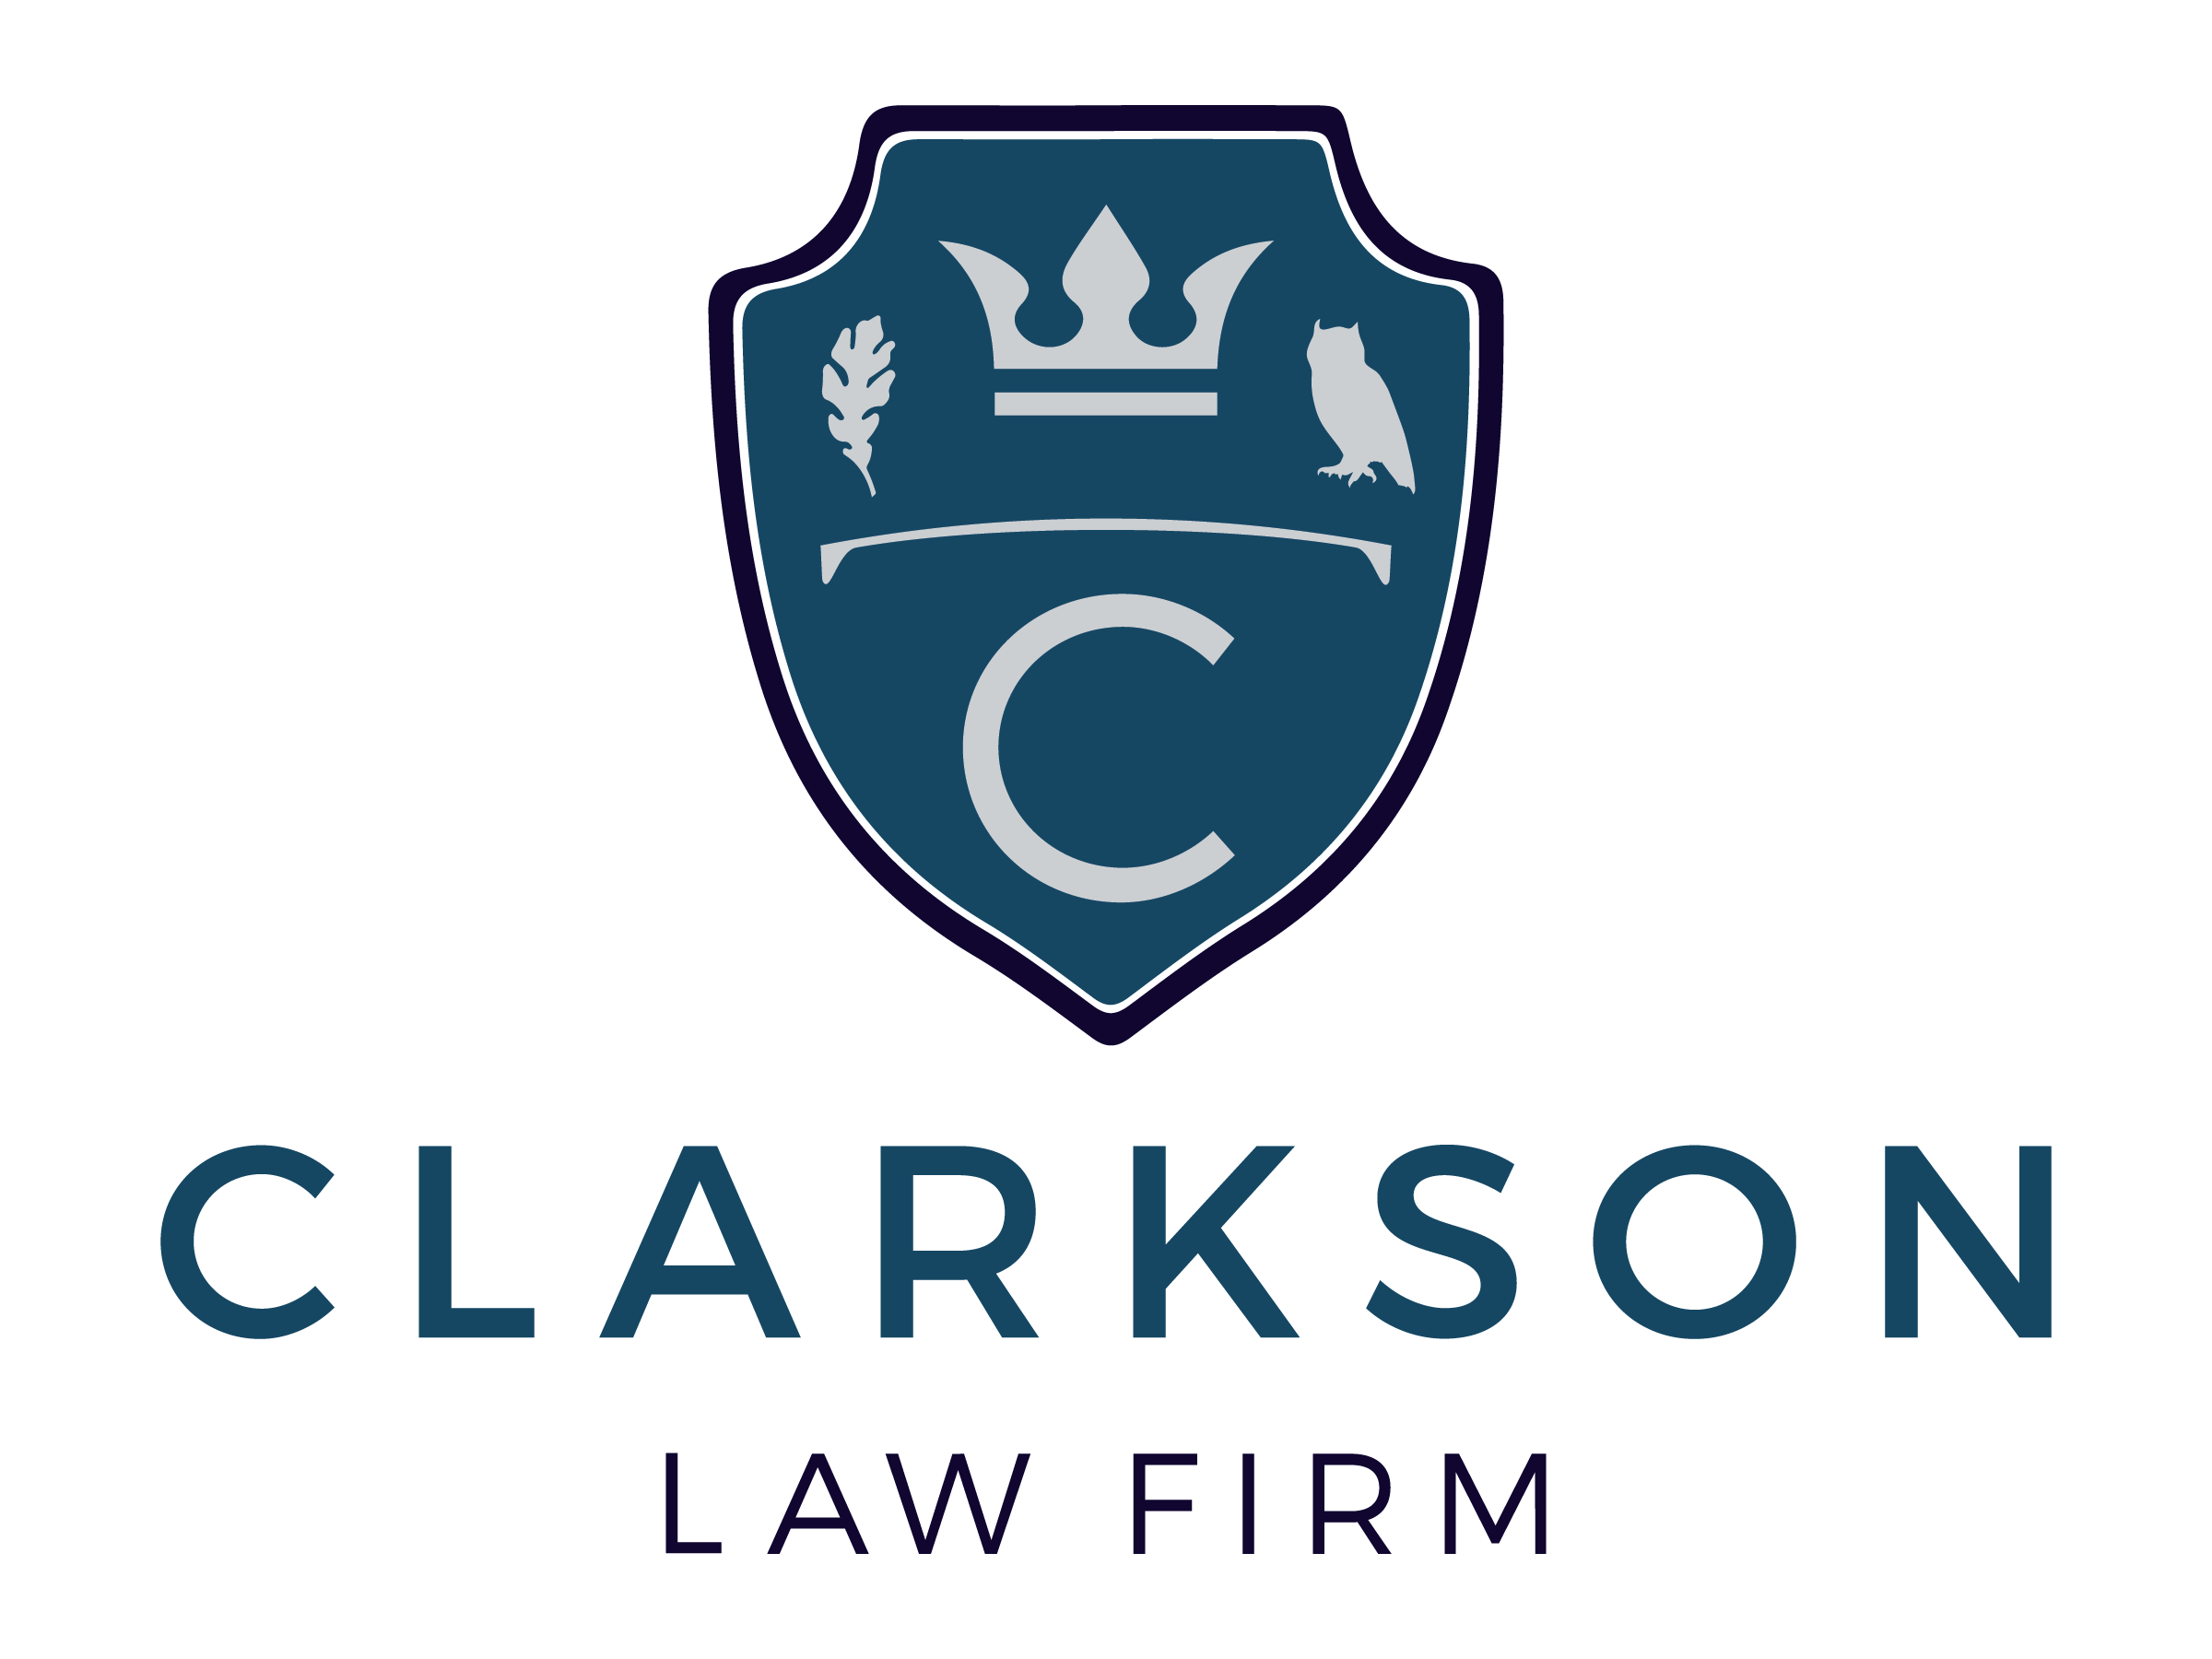 Clarkson Law Firm.PNG